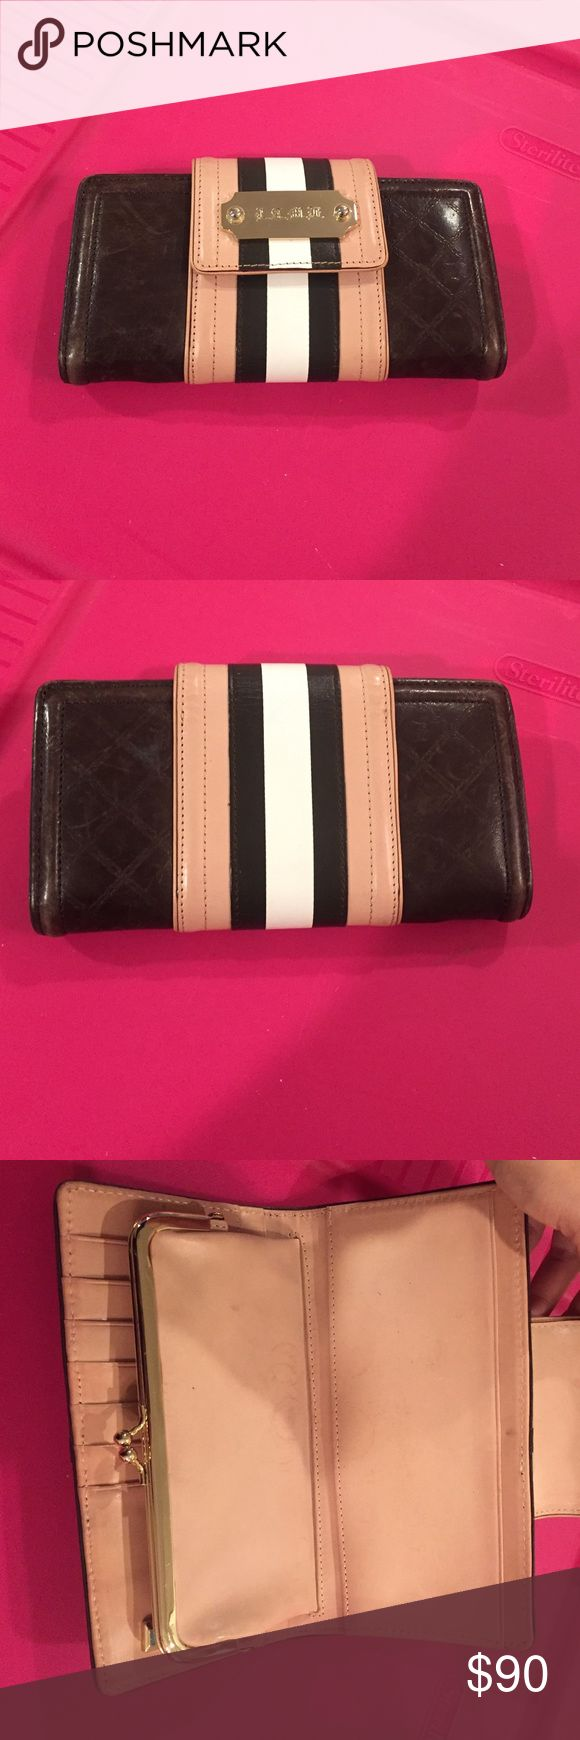 Lamb wallet Has some signs of wear on the inside. Outside is in great condition. The matching purse is listed as well. lamb Bags Wallets